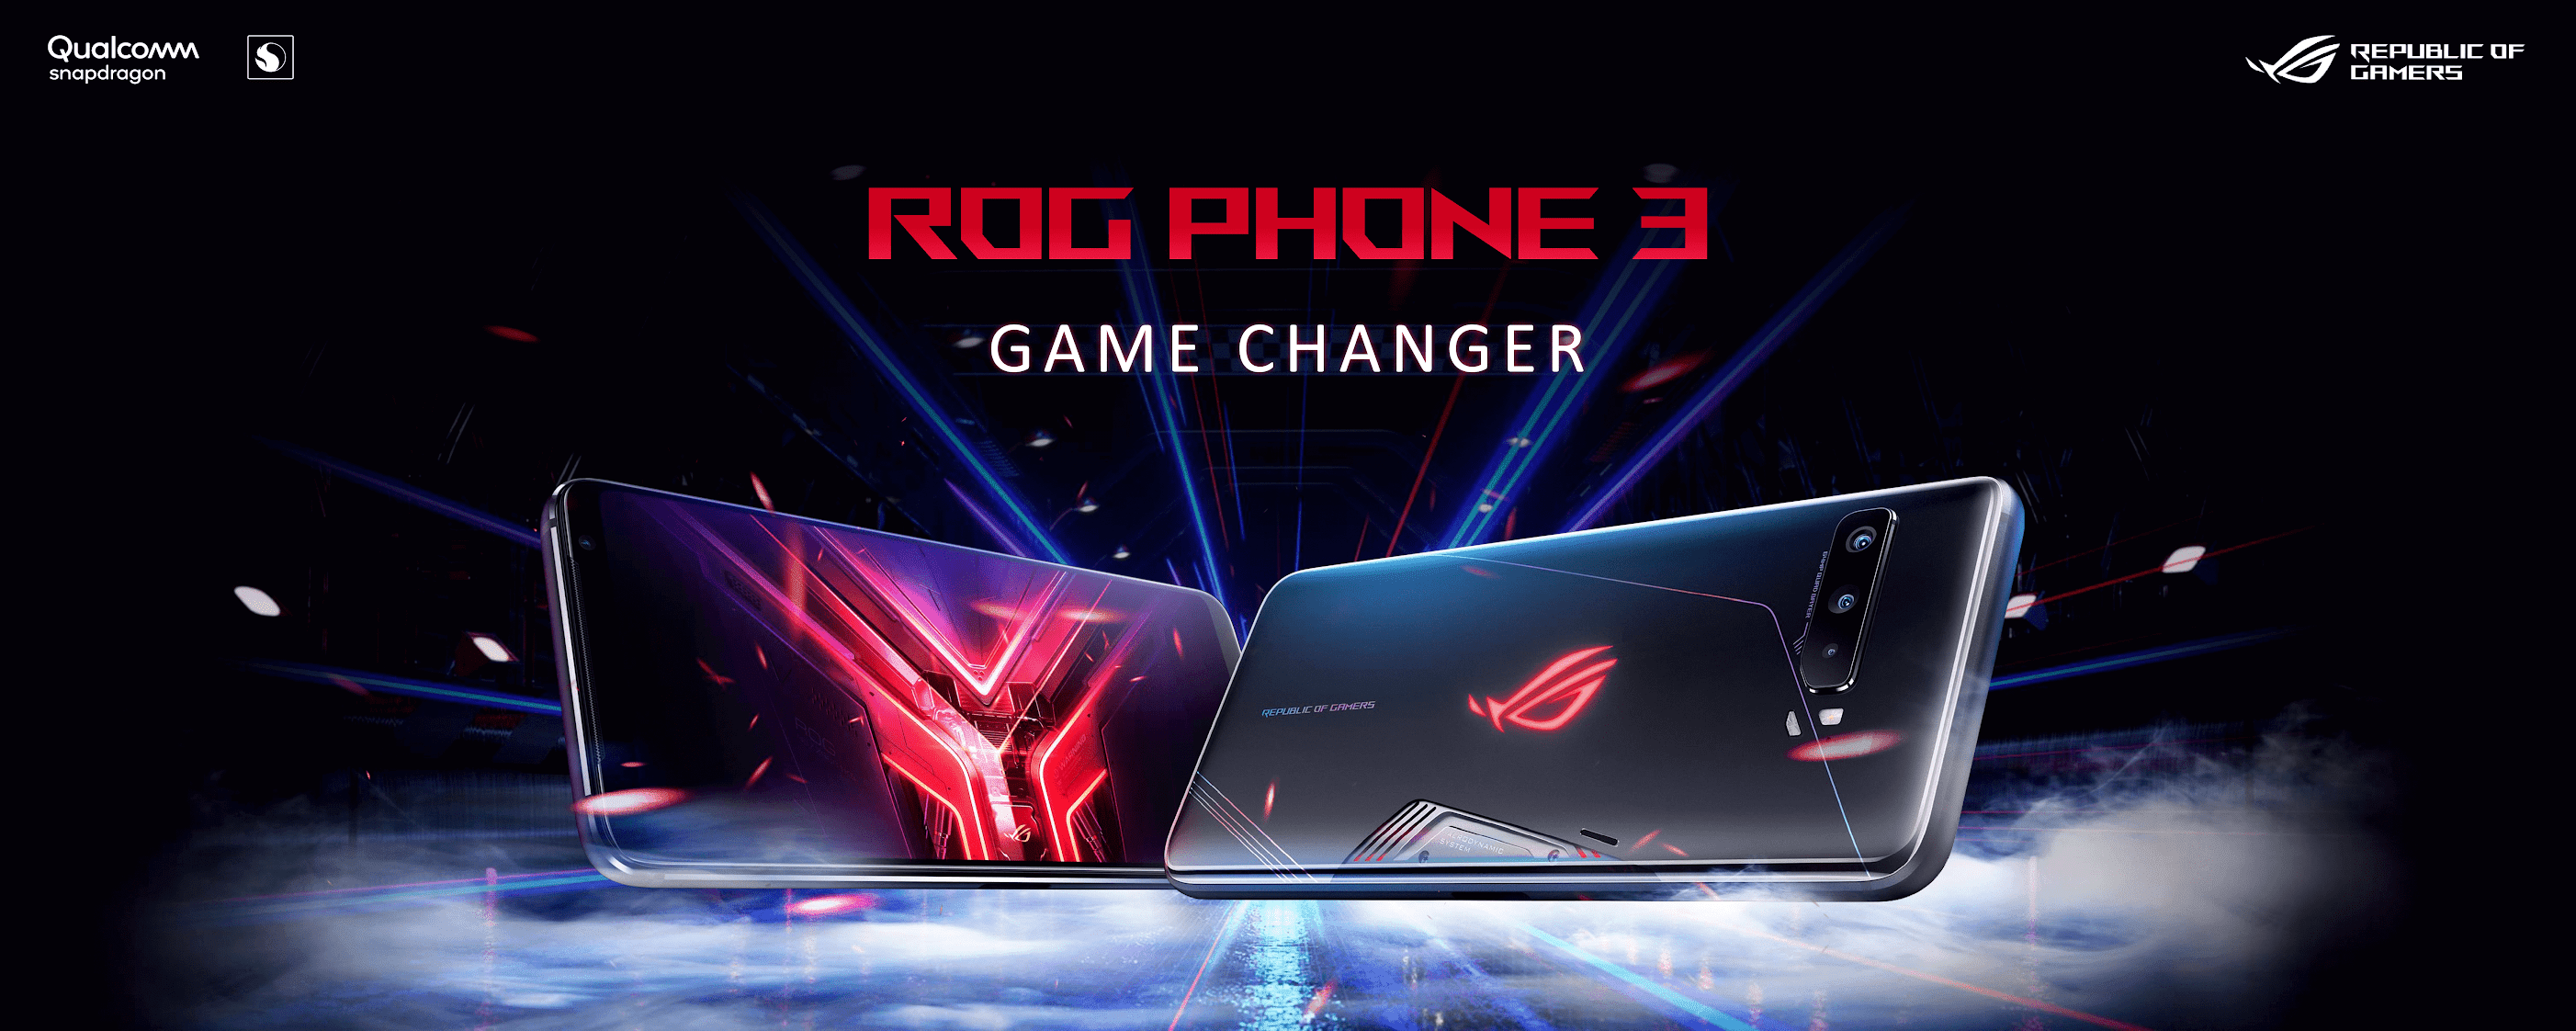 Asus ROG Phone 3 Game Changer